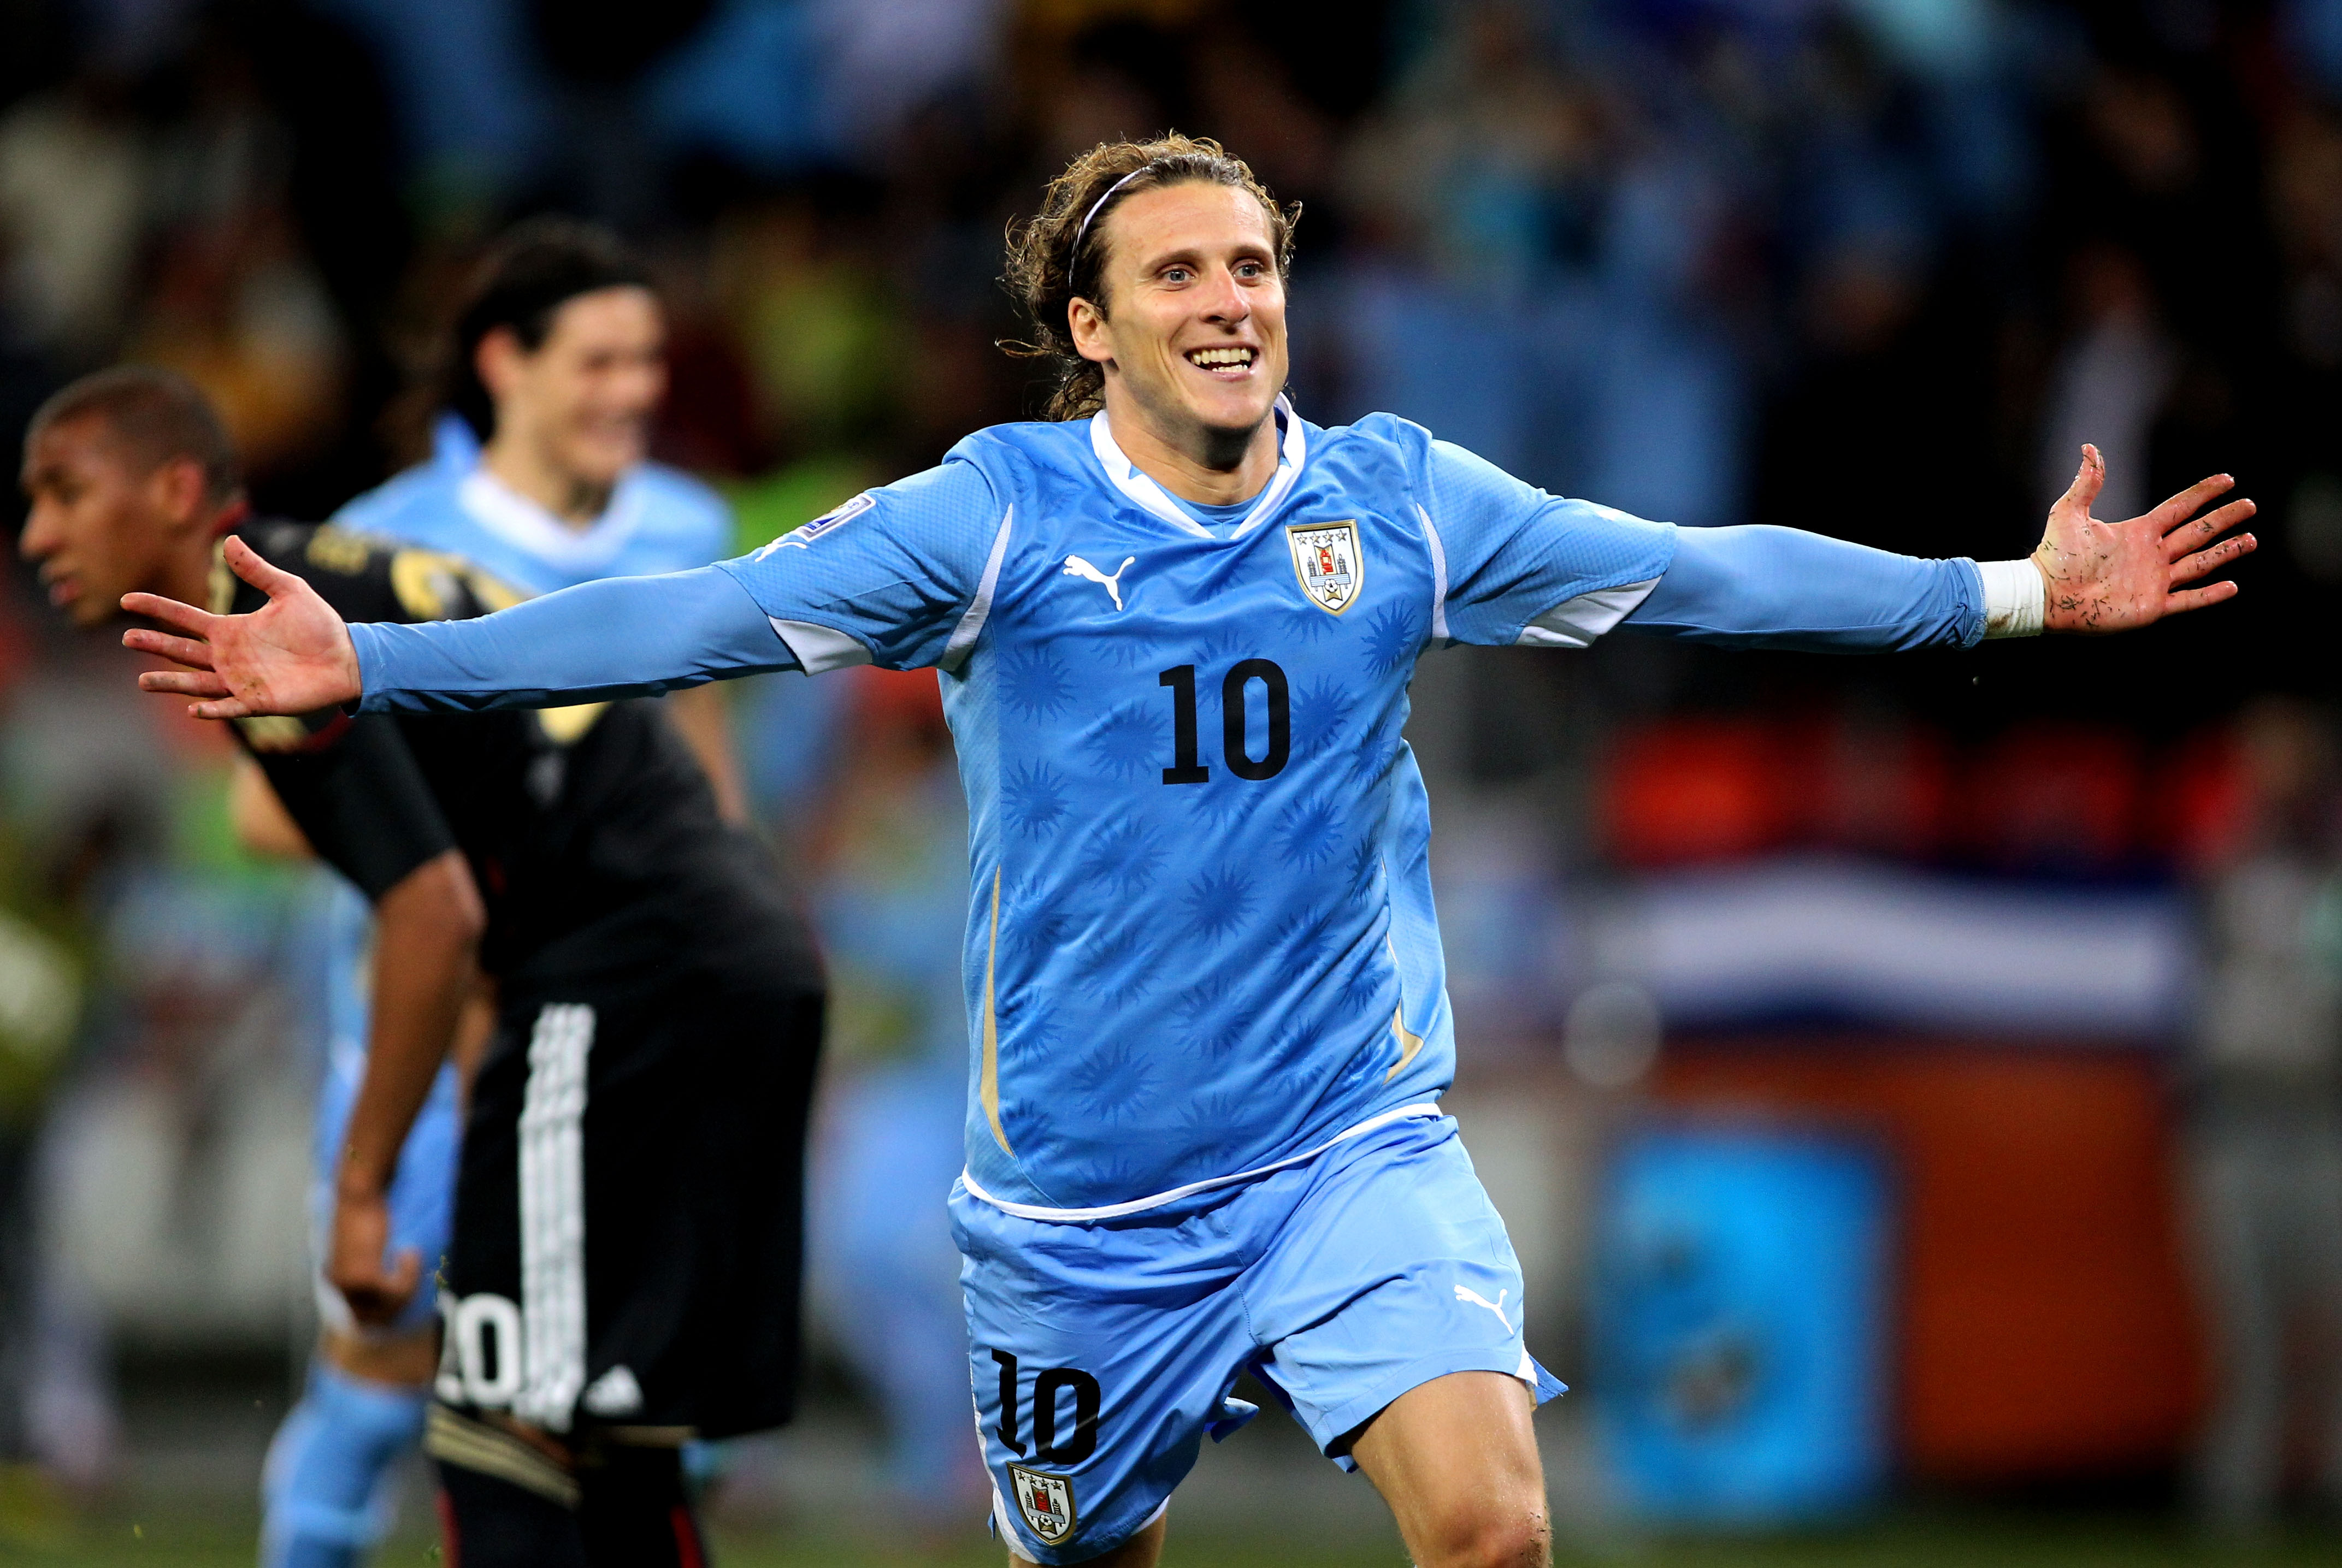 """Uruguay Legend Diego Forlán Is Really Out Here Calling Dani Alves a """"Bitch"""" and Neymar a """"Little Boy"""""""